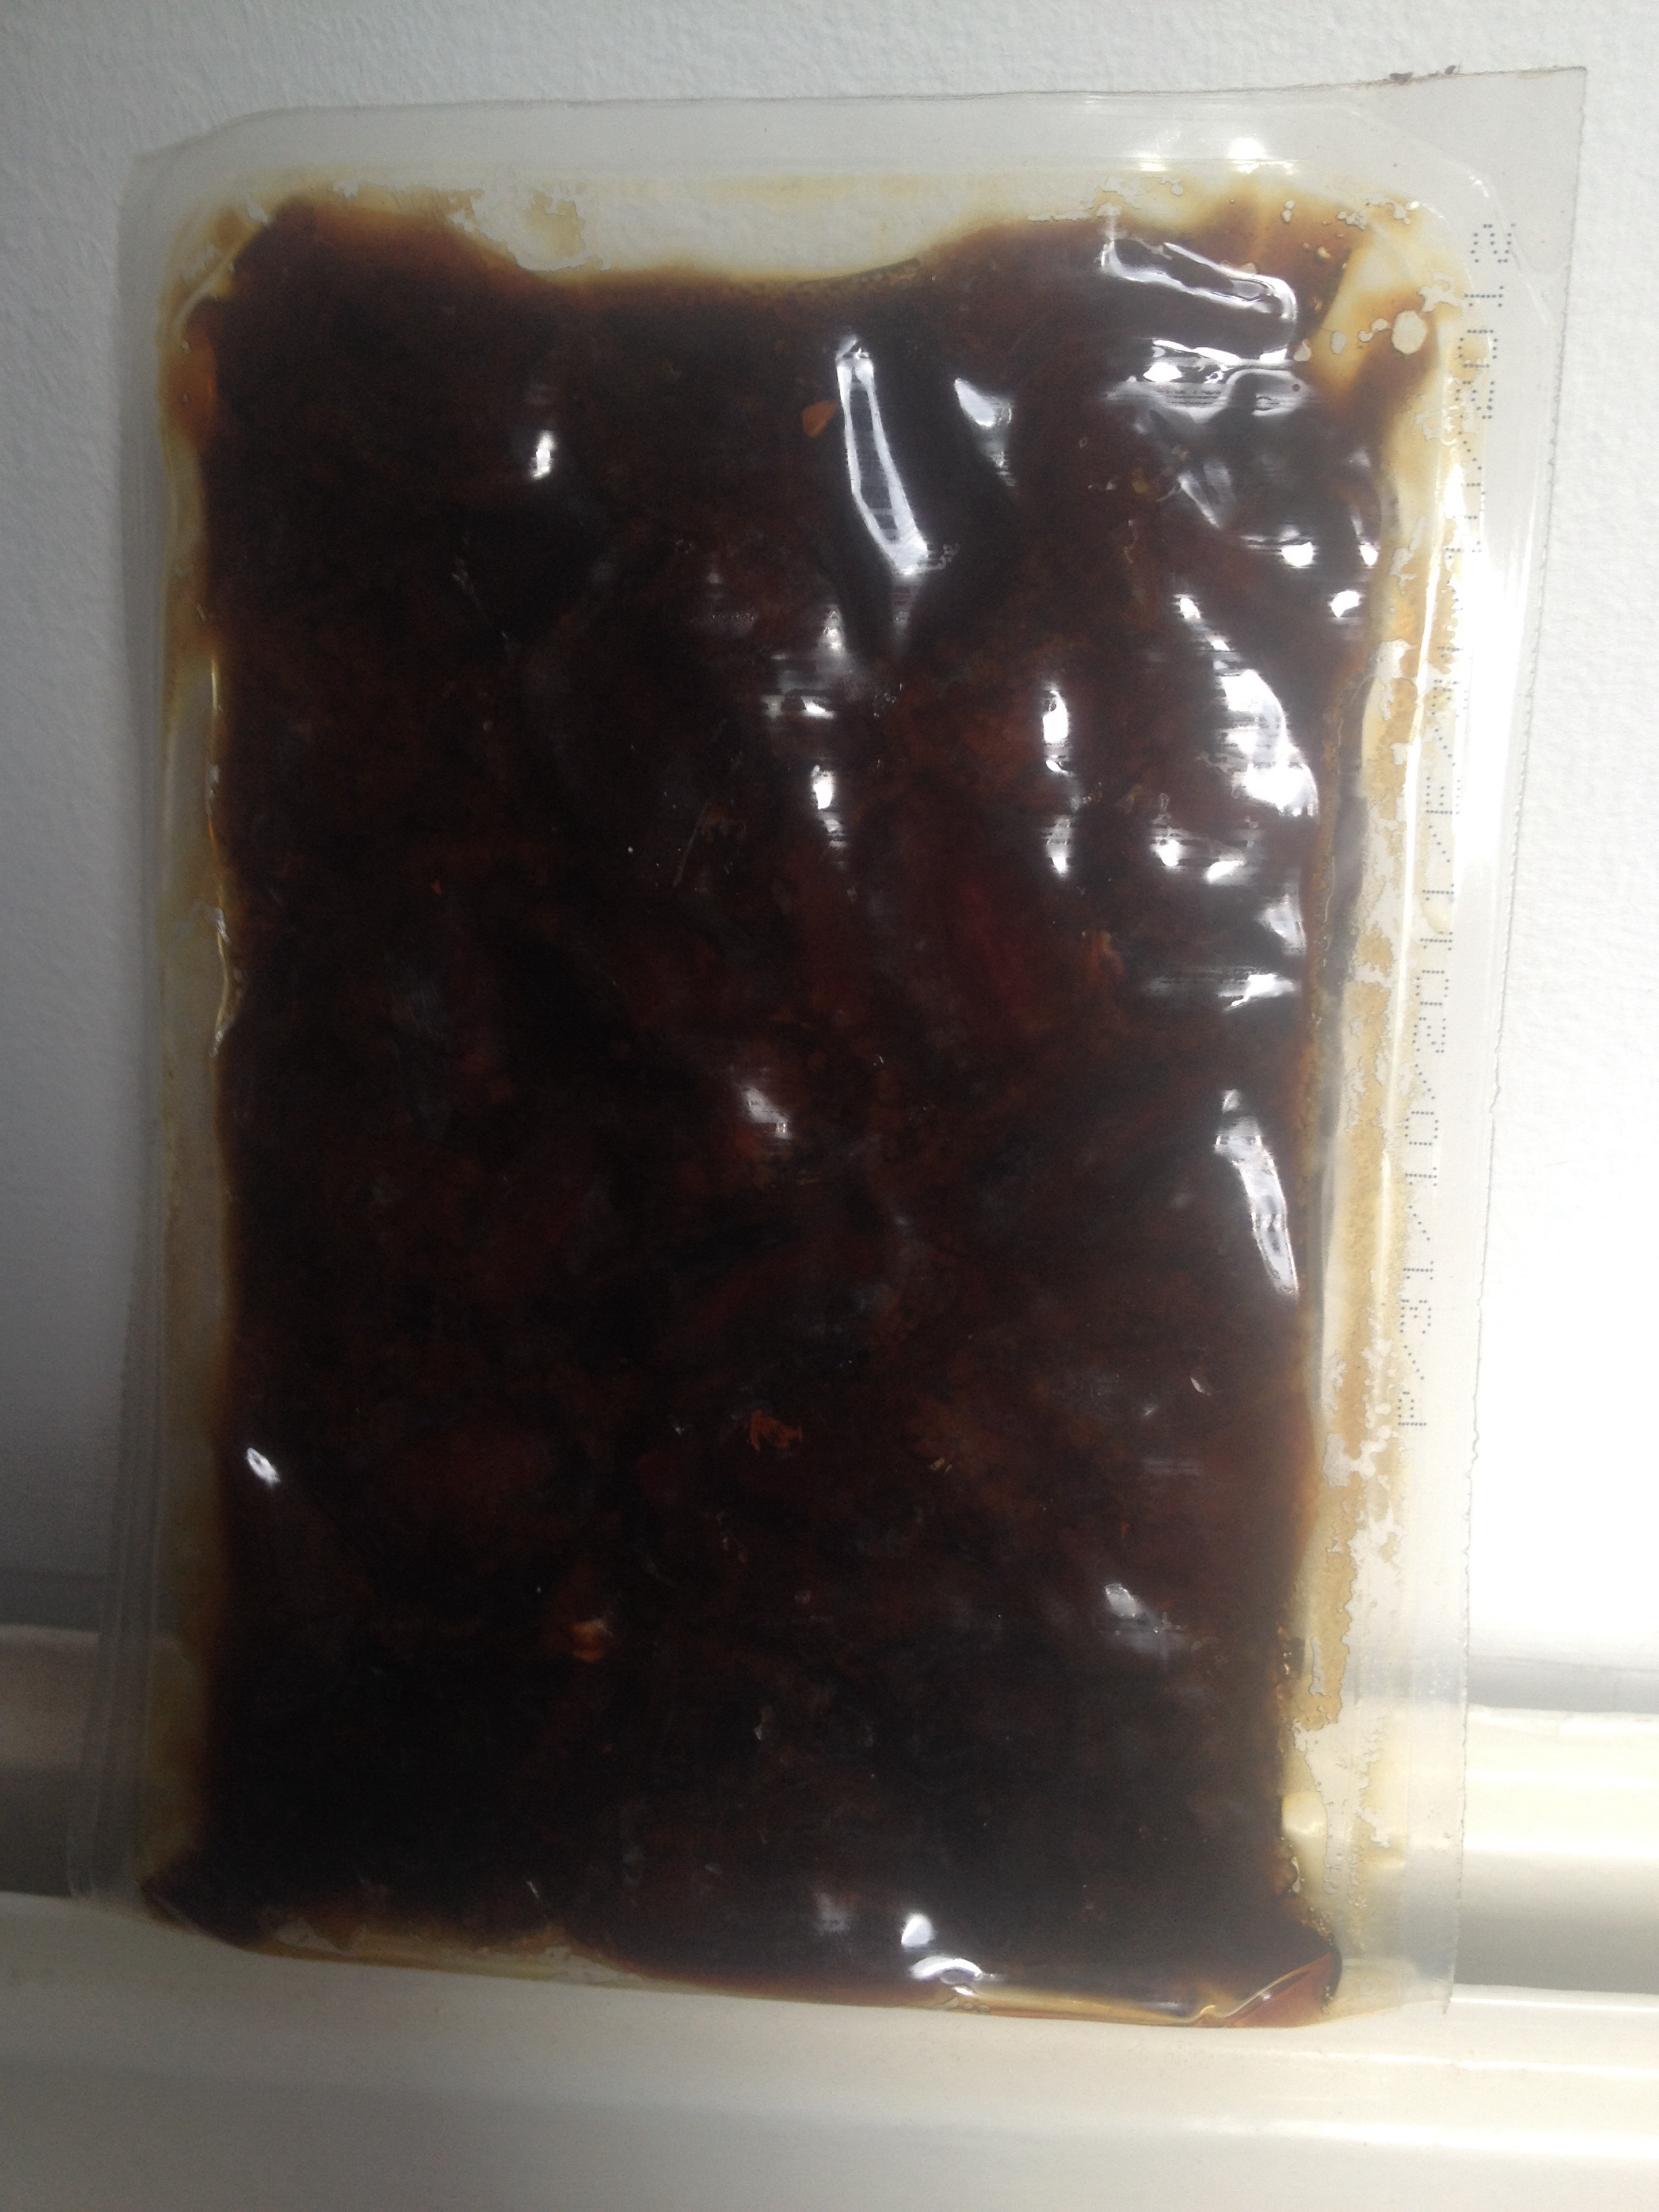 Dates, vacuum-packed